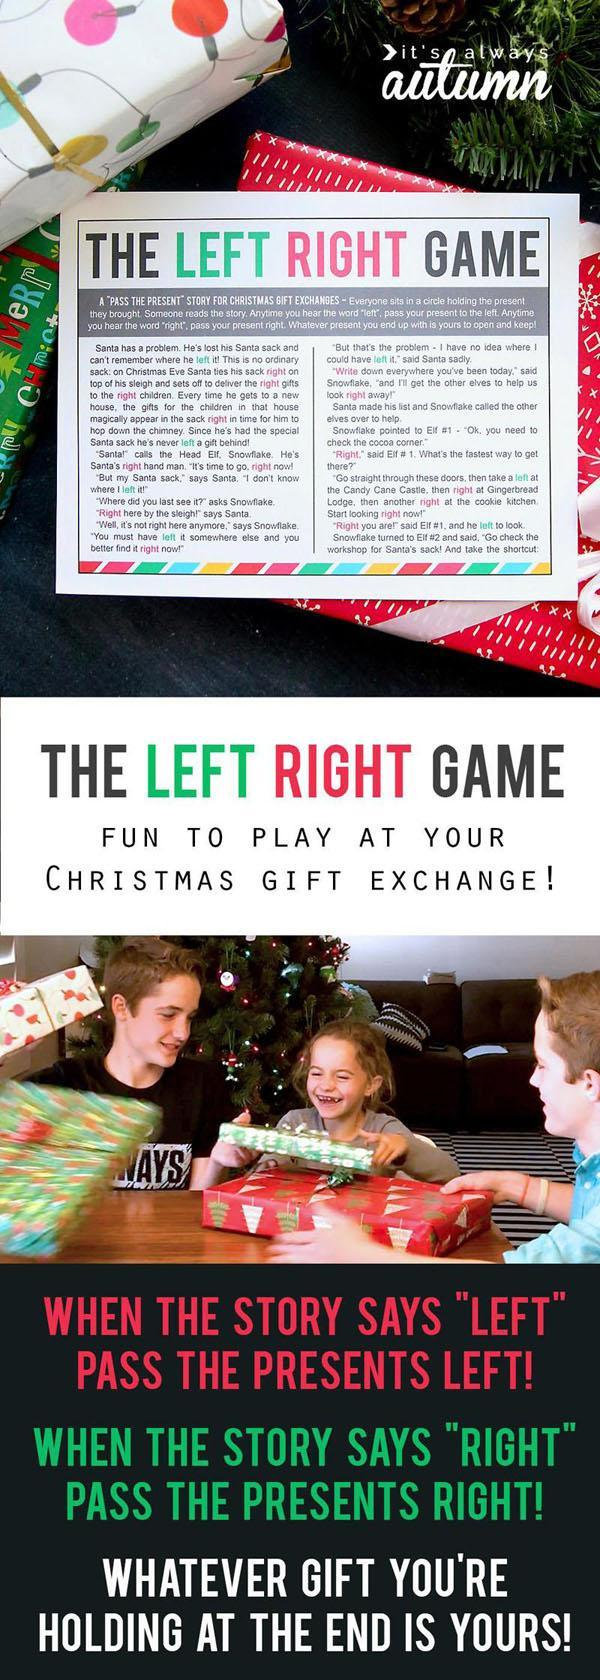 17 THE CHRISTMAS LEFT RIGHT GAME